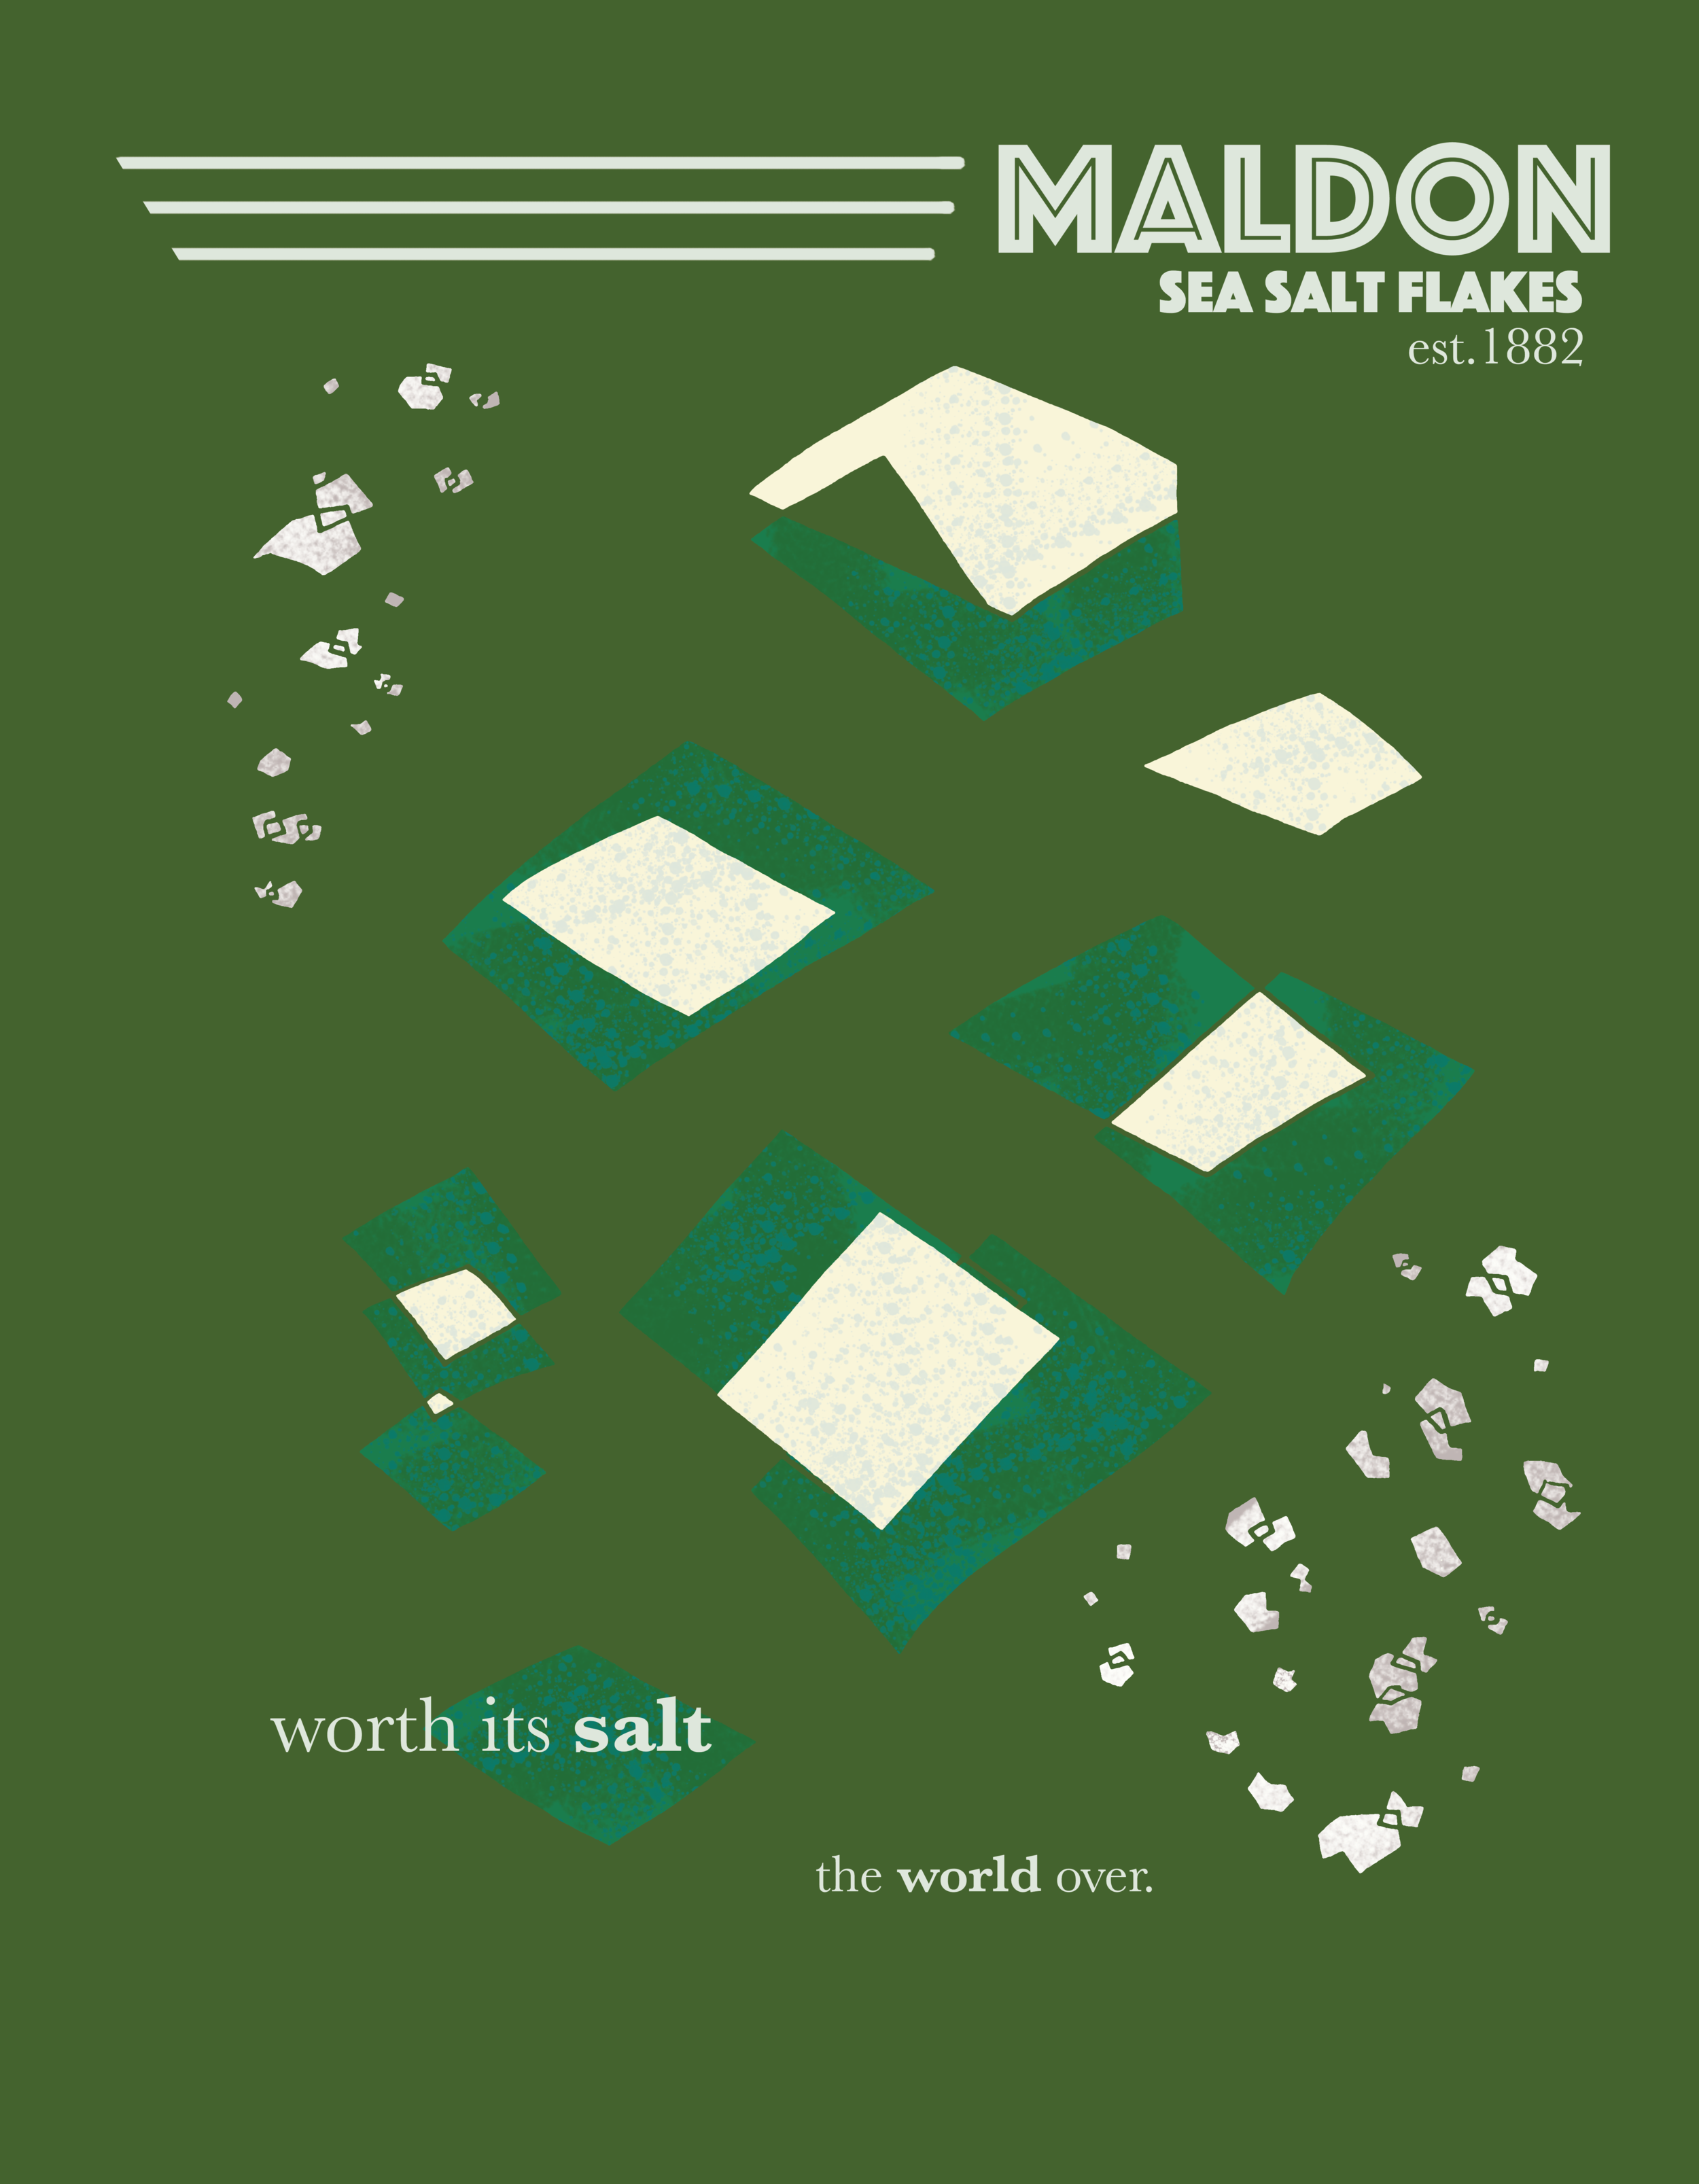 Reconceptualization of the Maldon Salt brand, bringing them into a modernist feel. Original copy shortened and compiled to keep the feel fresh and accessible.